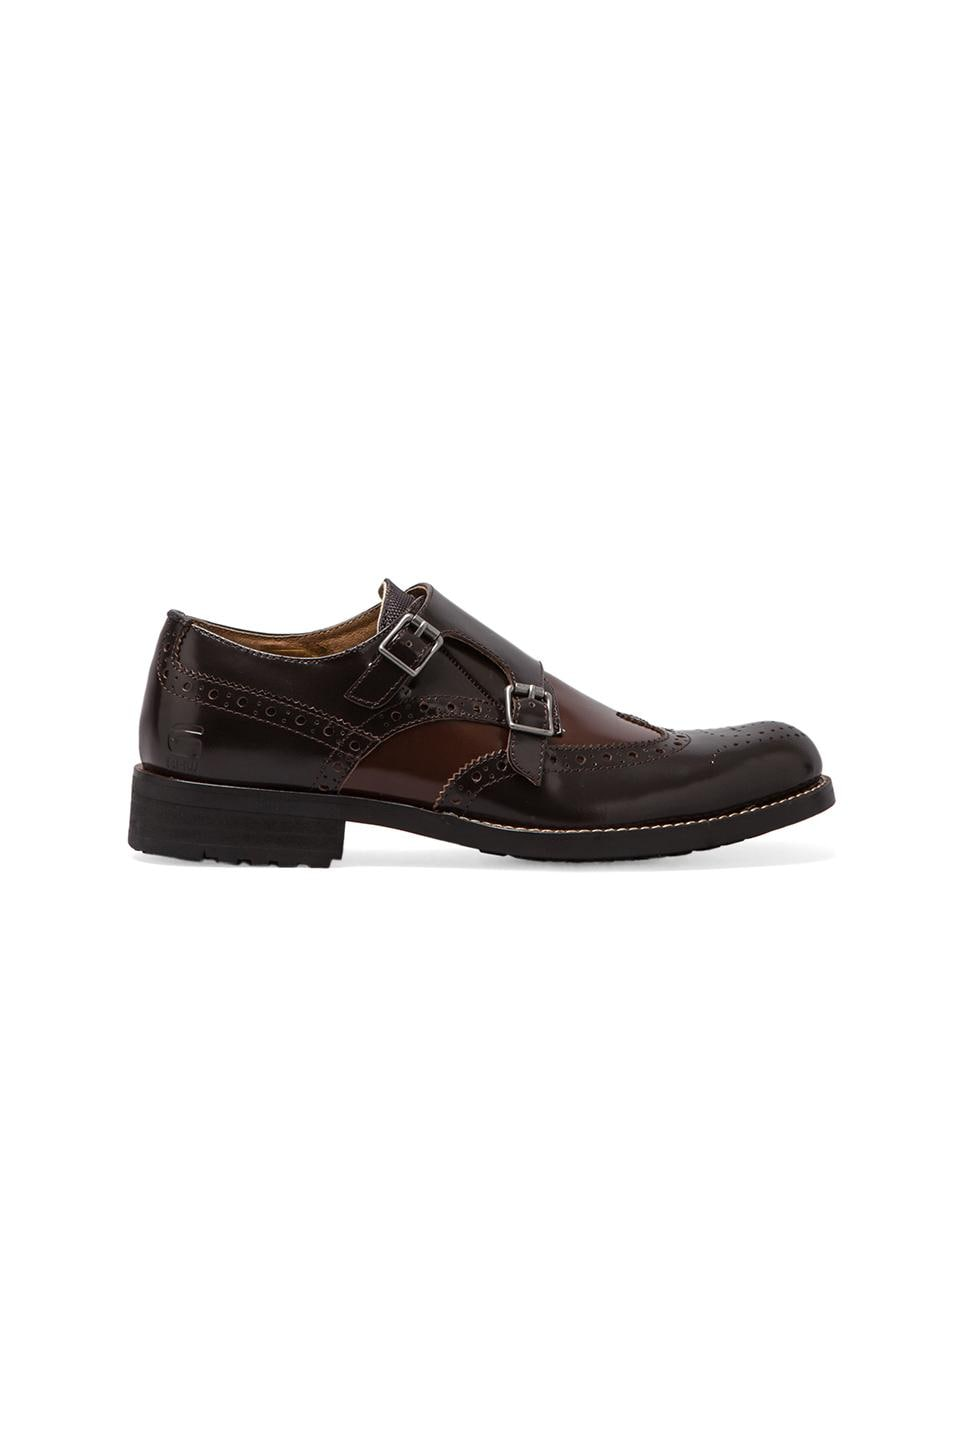 G-Star Manor Credo Shine Wingtip Double Monk in Dark Brown Textured Leather w/ Mild Brown